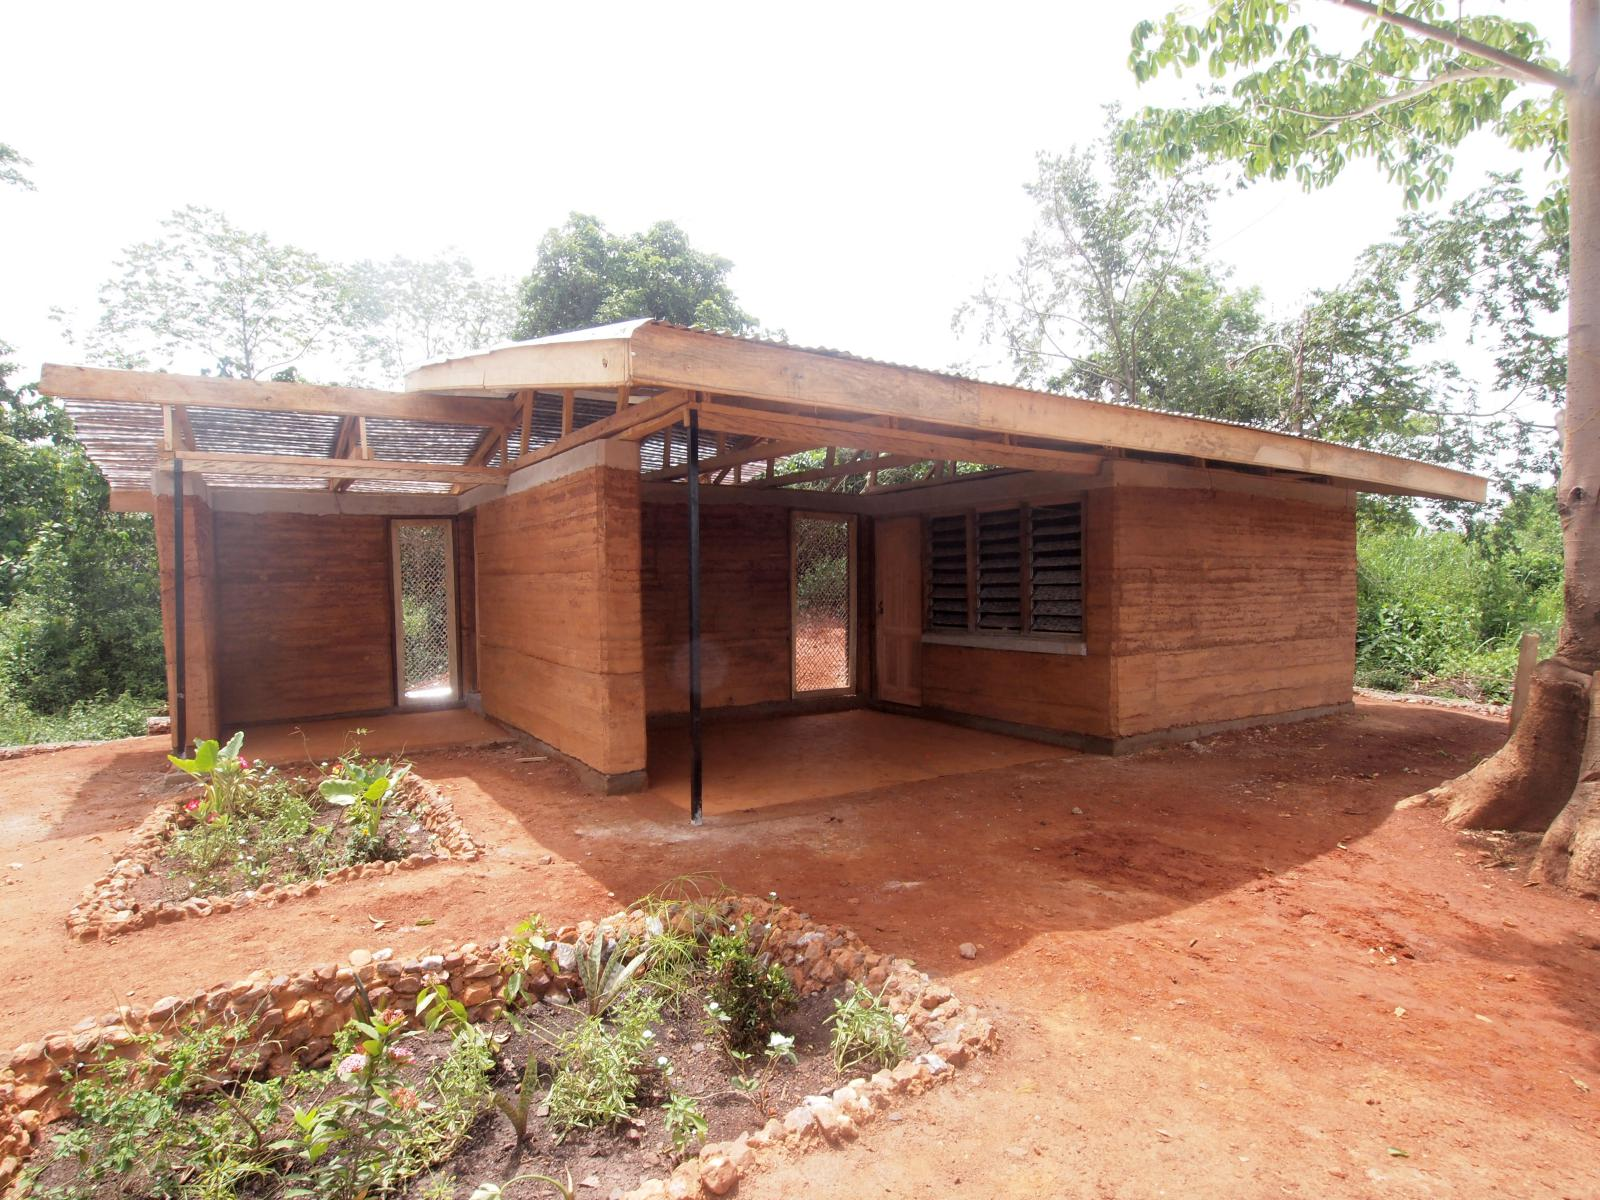 Uncategorized Earth House Design the nkabom house a case study for earth construction and original concept was design entry to nka foundations 2014 mud competition reinventing african hut together